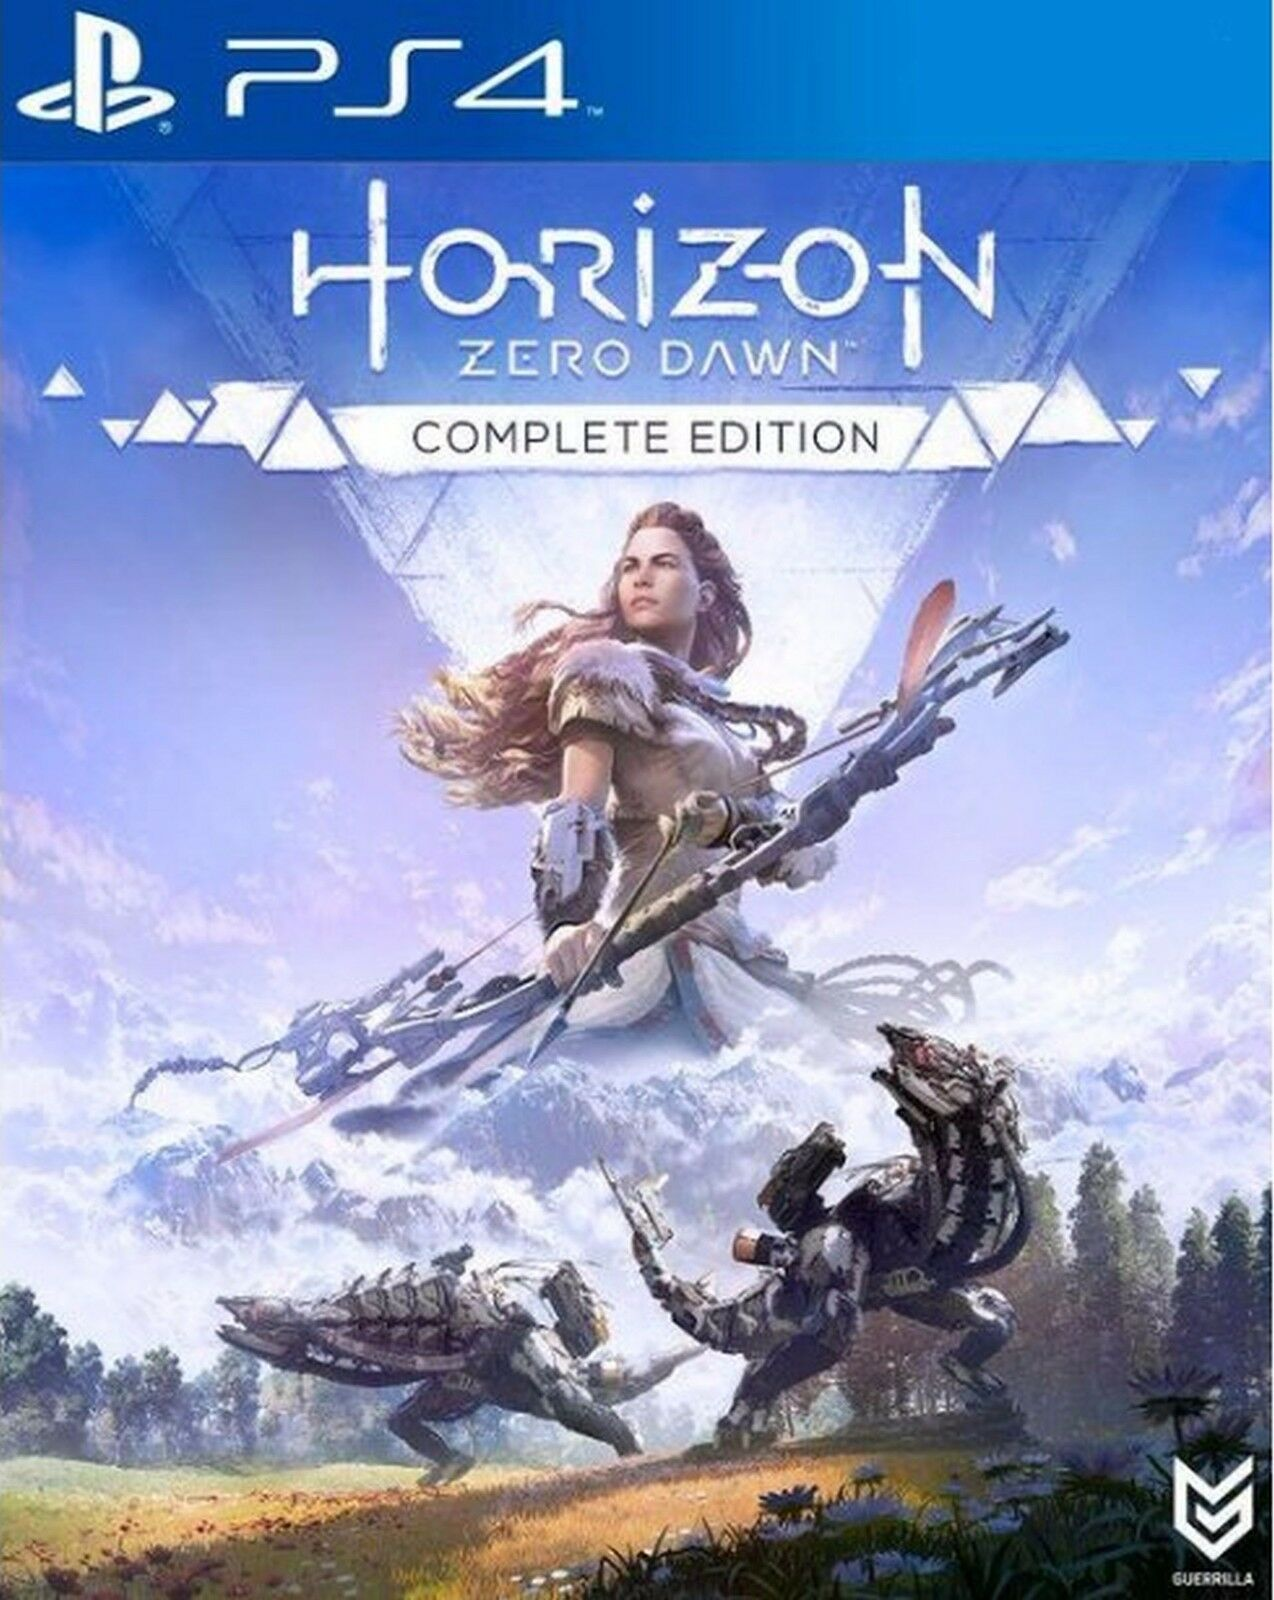 Horizon Zero Dawn Complete Edition English Chinese Subtitle For Ps4 Nba 2k19 20th Anniversary Region 3 1 Of 1only Available